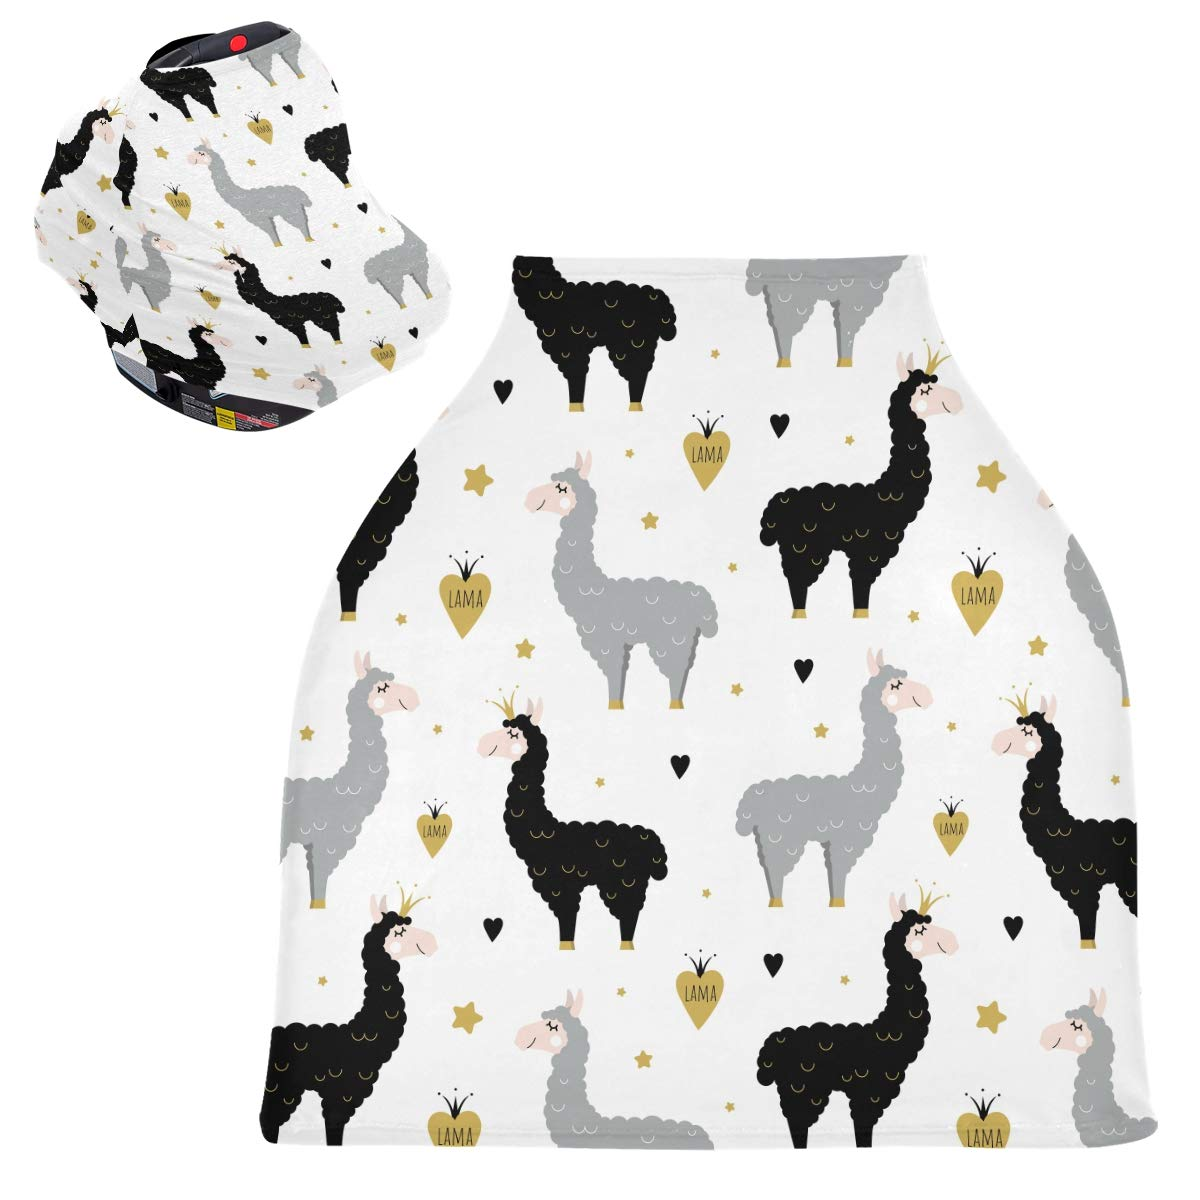 Stretchy Baby Car Seat Canopy - Cute Black Gray Llamas Infant Stroller Cover Multi Use Carseat Canopy Nursing Cover for High Chair